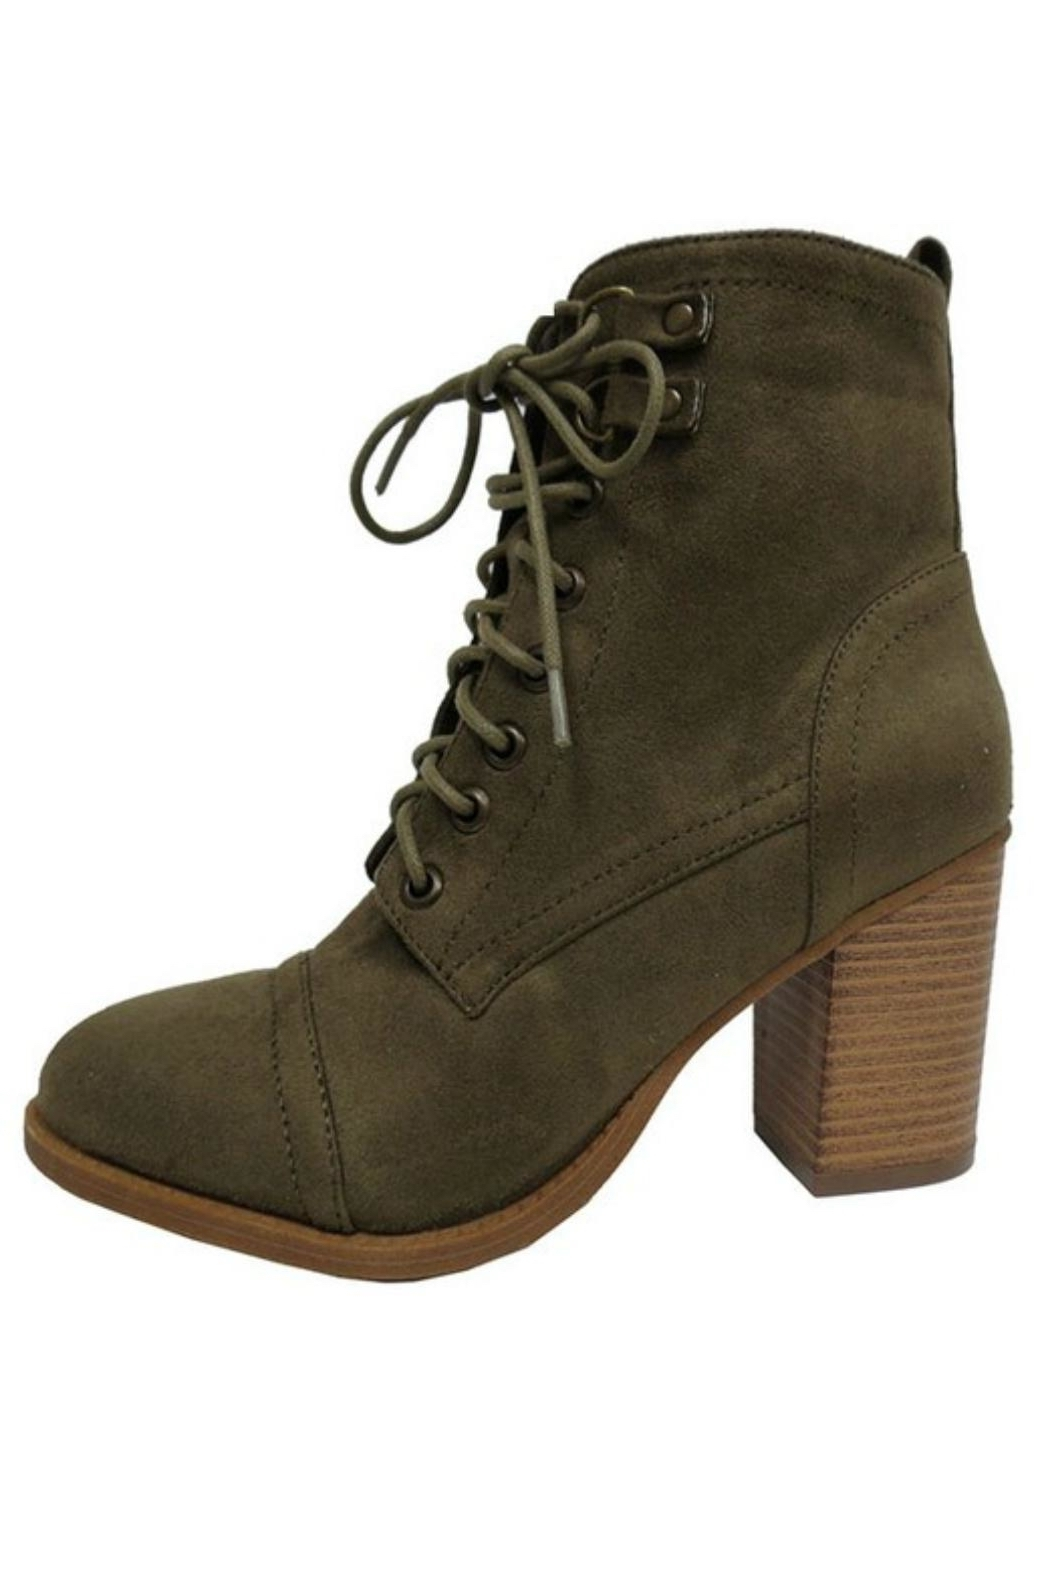 X2B Olive Lace-Up Boots from California